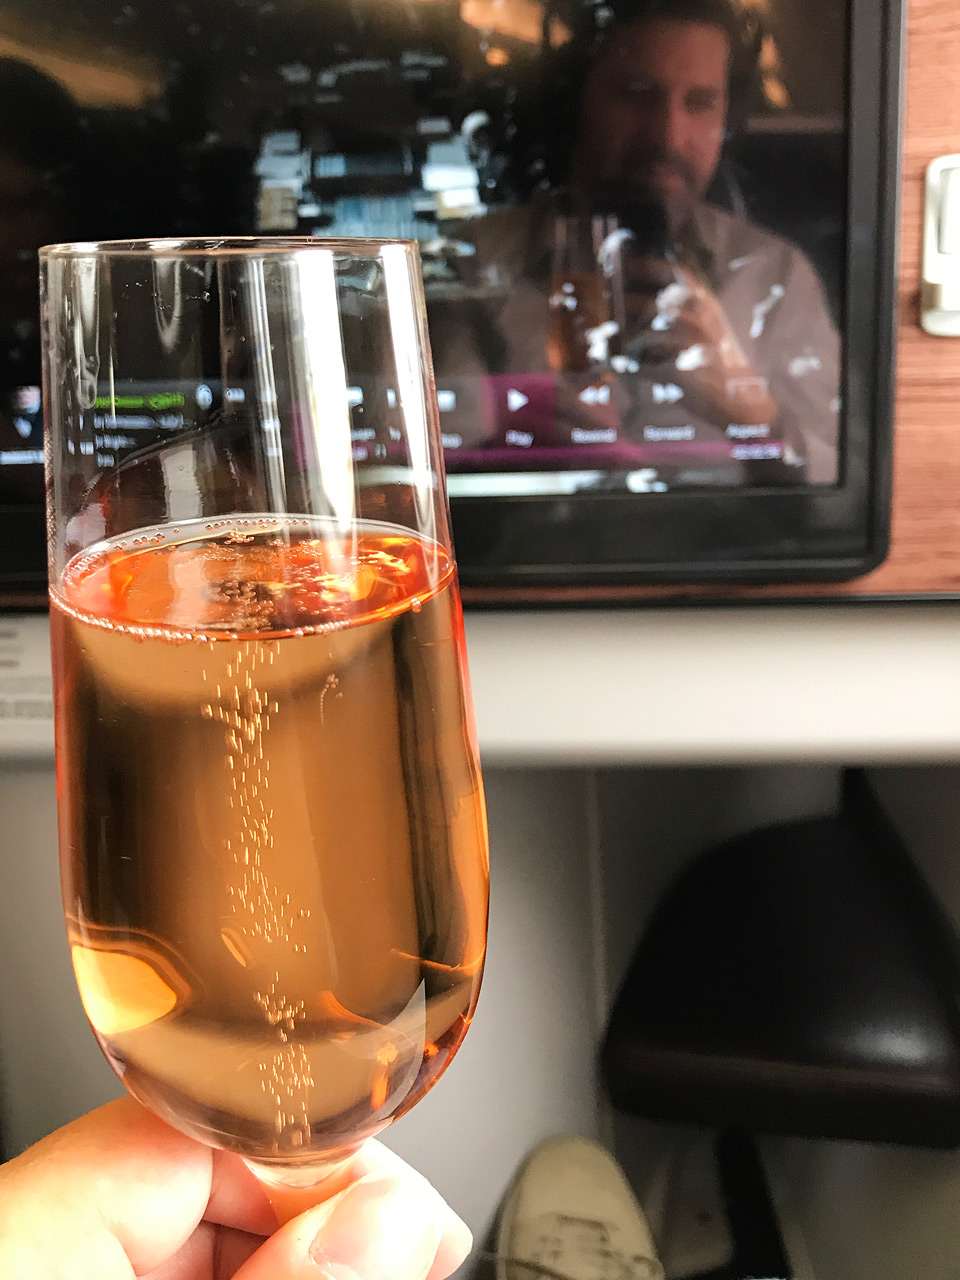 180318-business-class-qatar-airlines